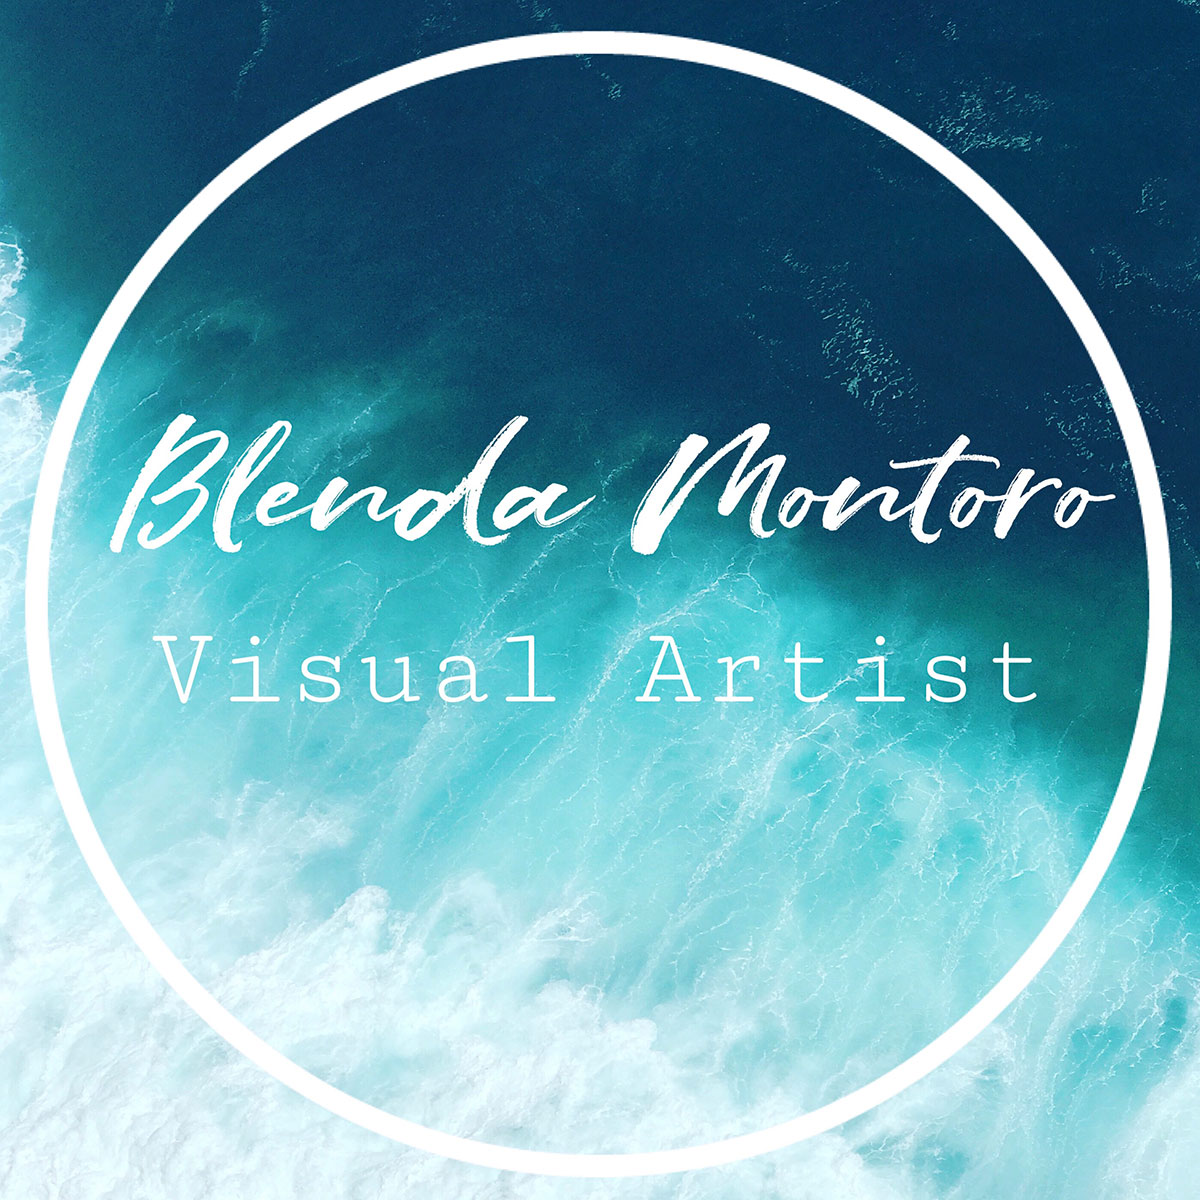 Blenda Montoro - Visual Artist, Kauai Hawaii